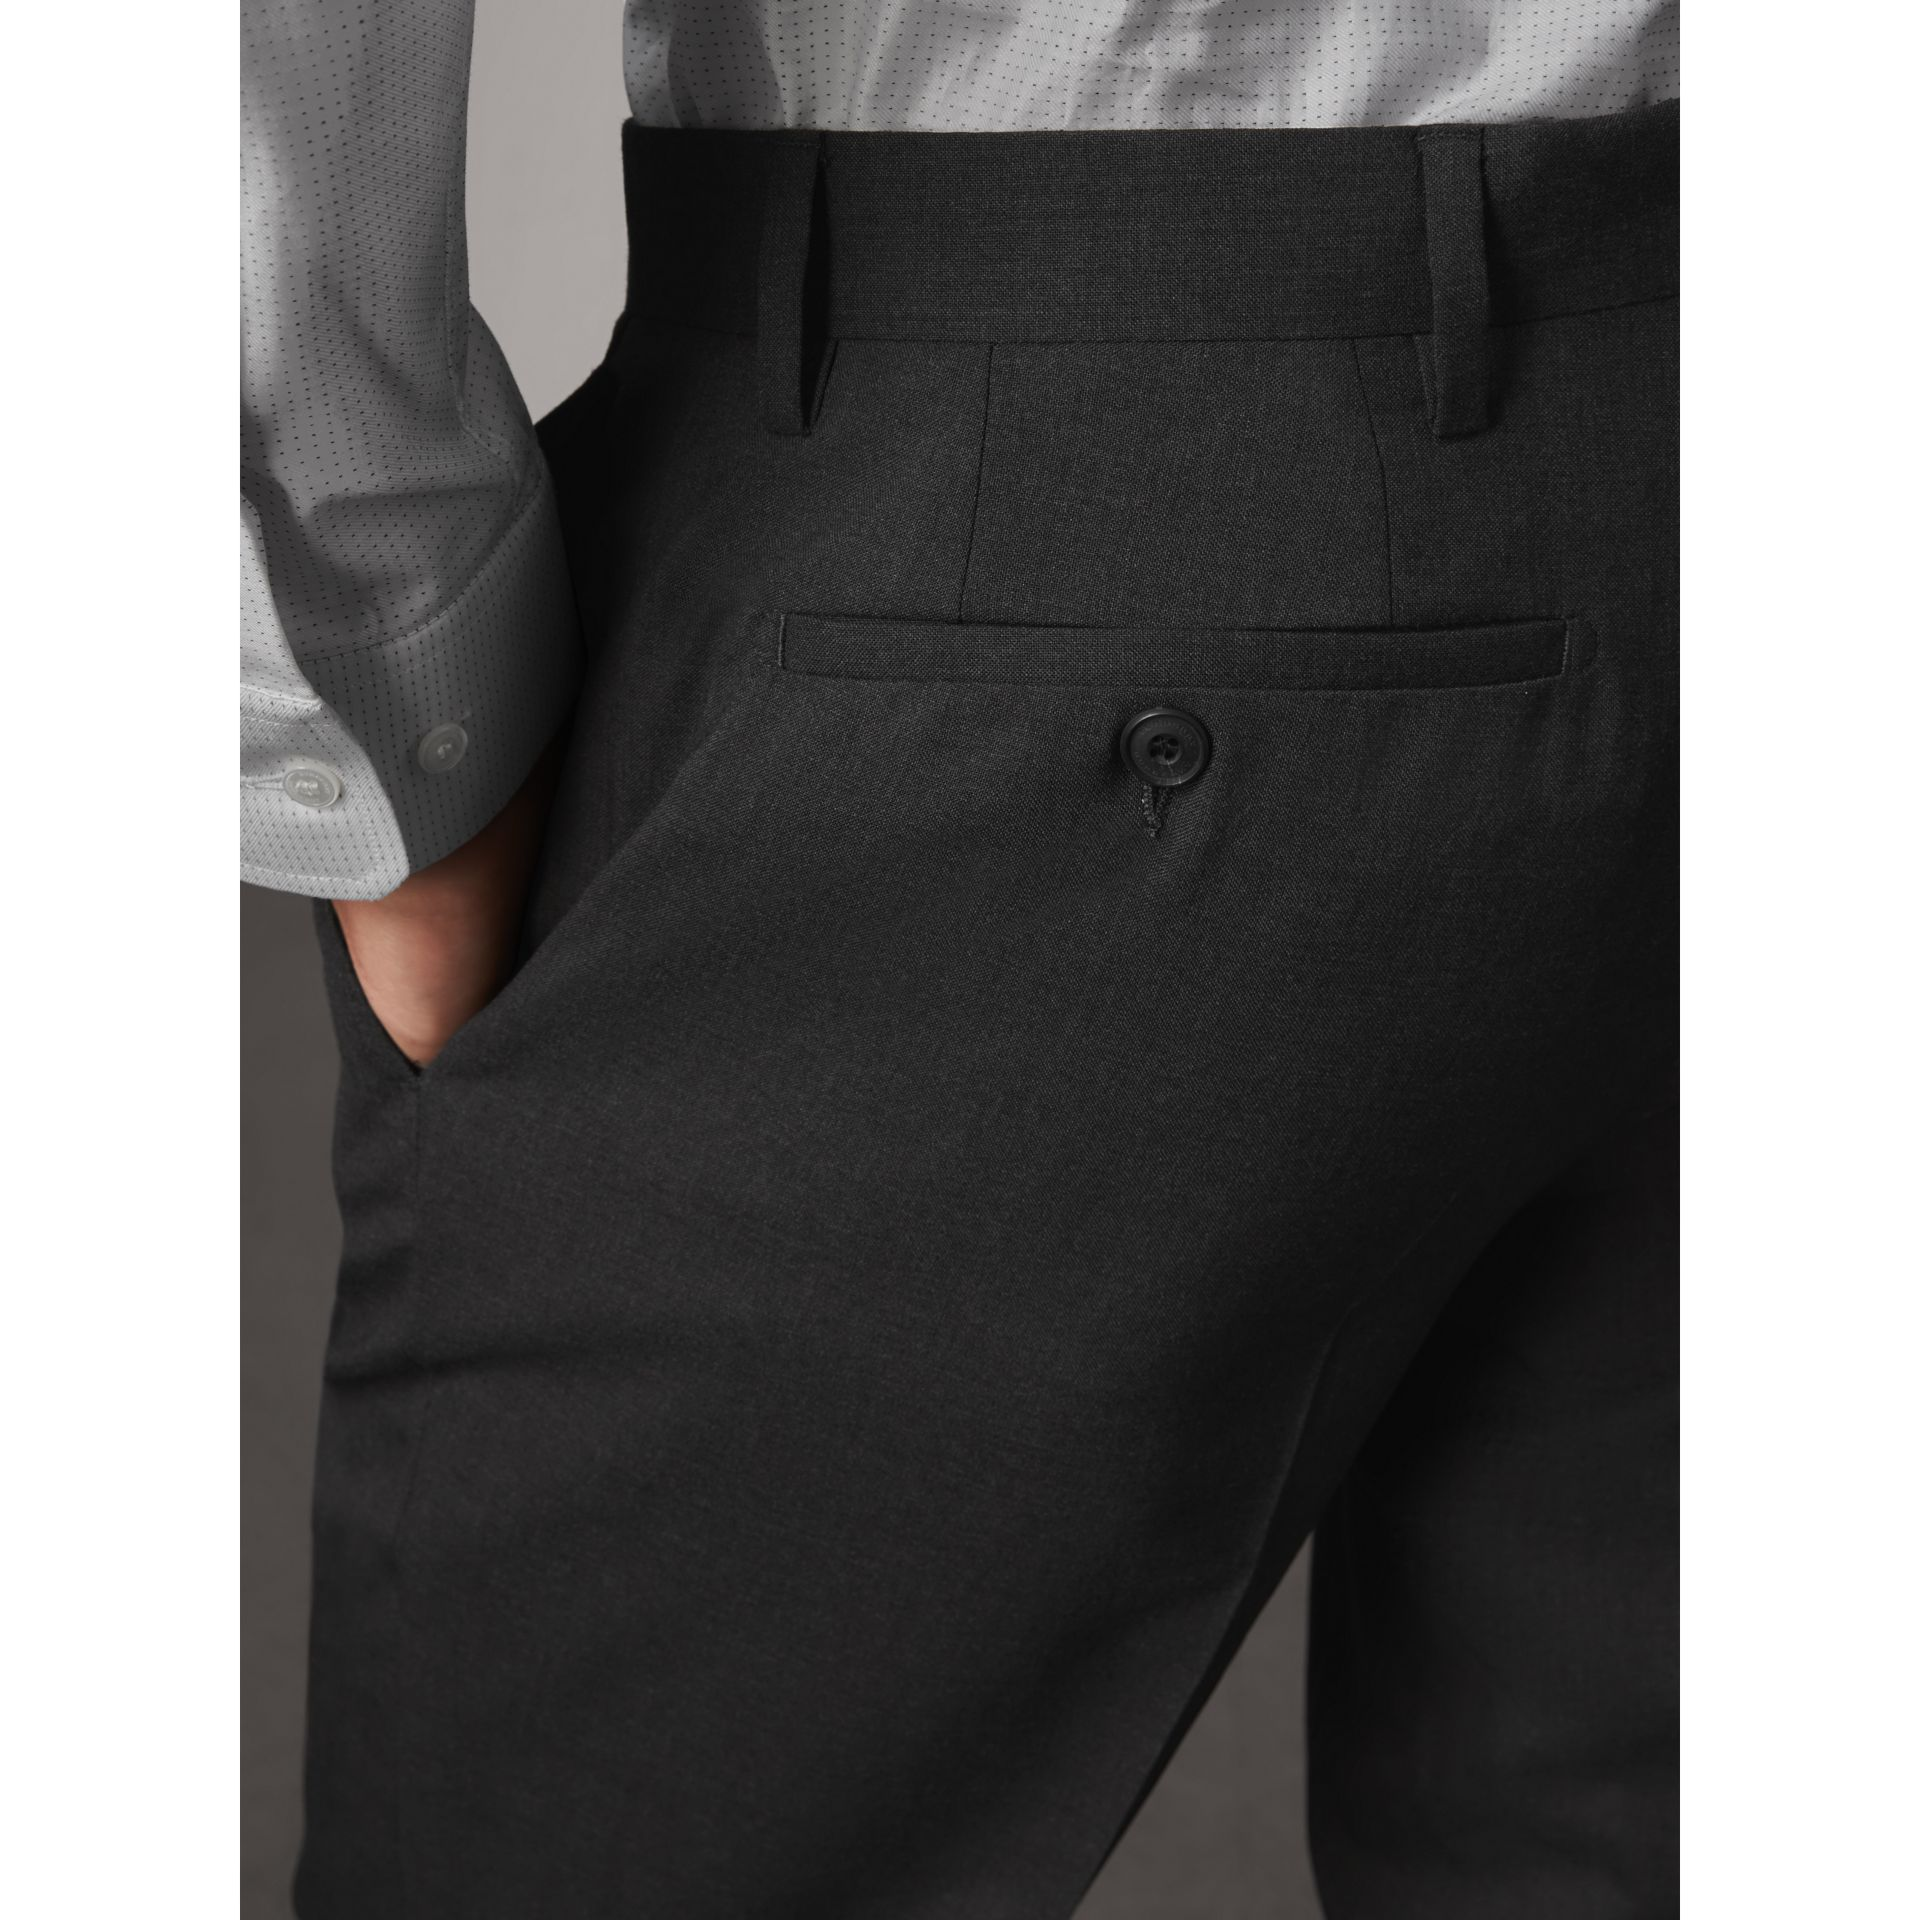 Pantalon de coupe moderne en laine (Anthracite) - Homme | Burberry - photo de la galerie 4